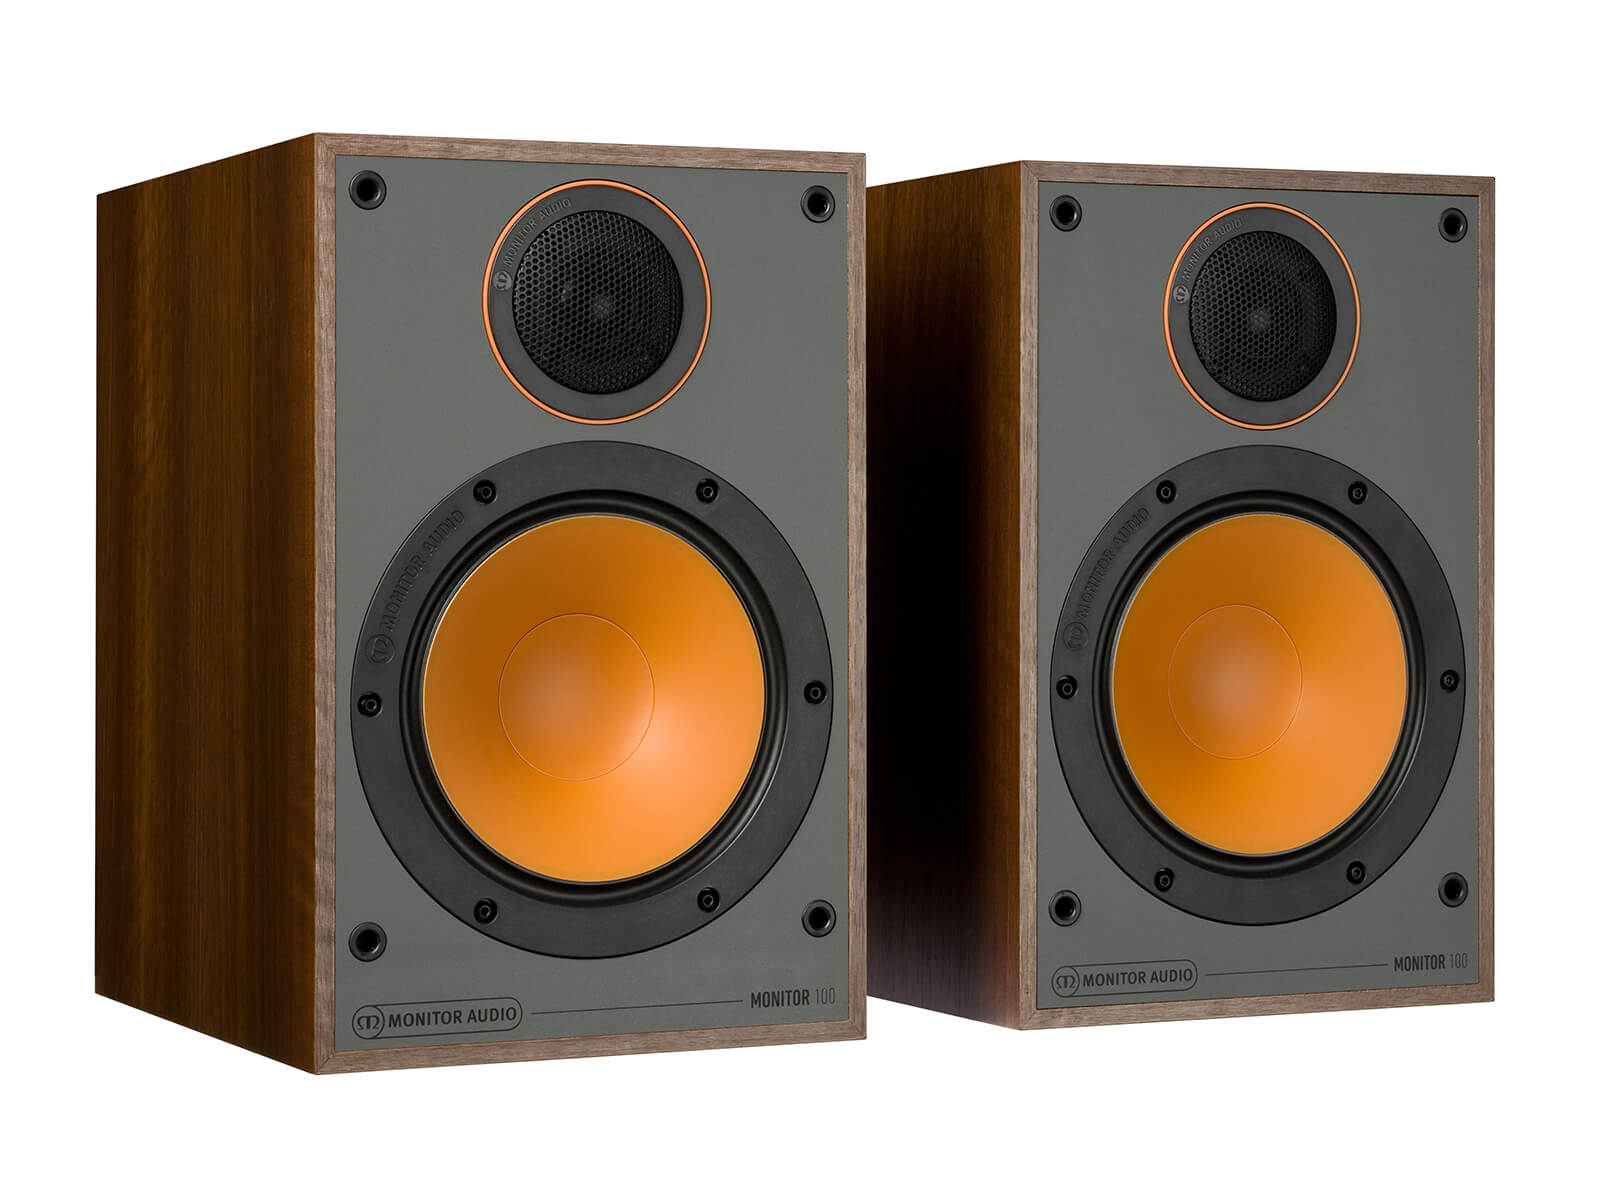 Monitor 100, bookshelf speakers, without grilles in a walnut vinyl finish.